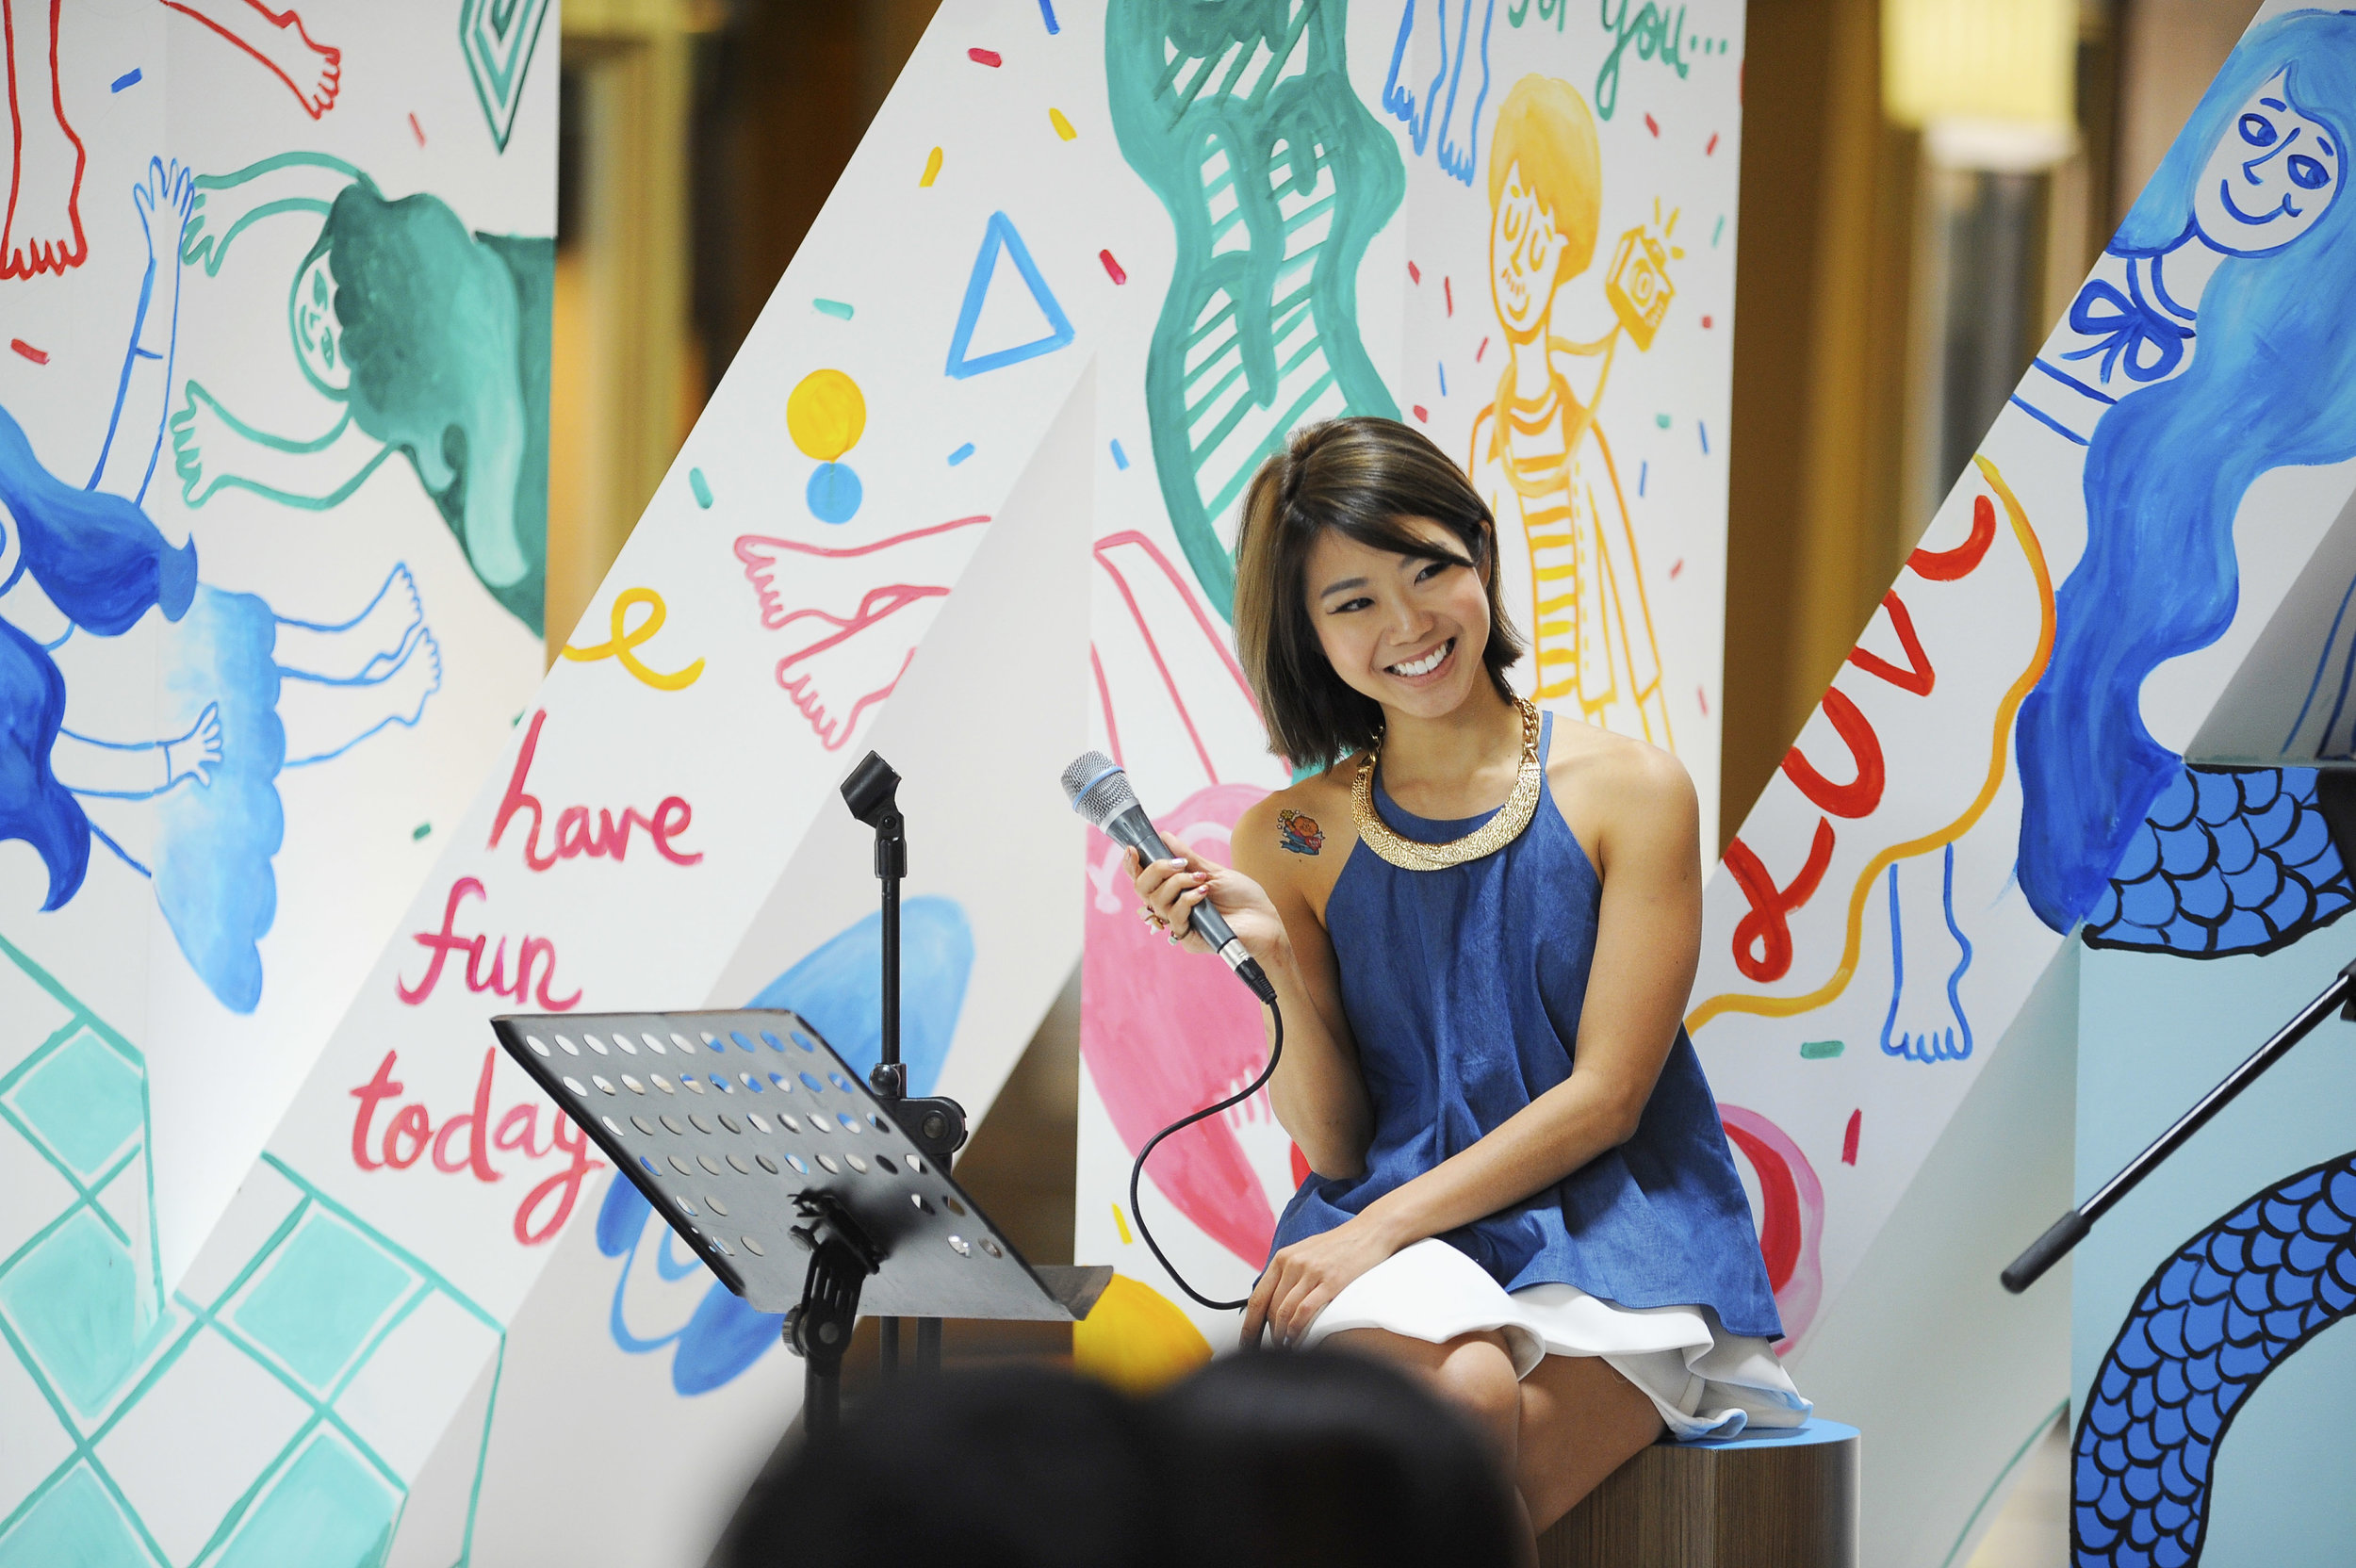 outeredit - millenia walk loves local - tay kexin 2